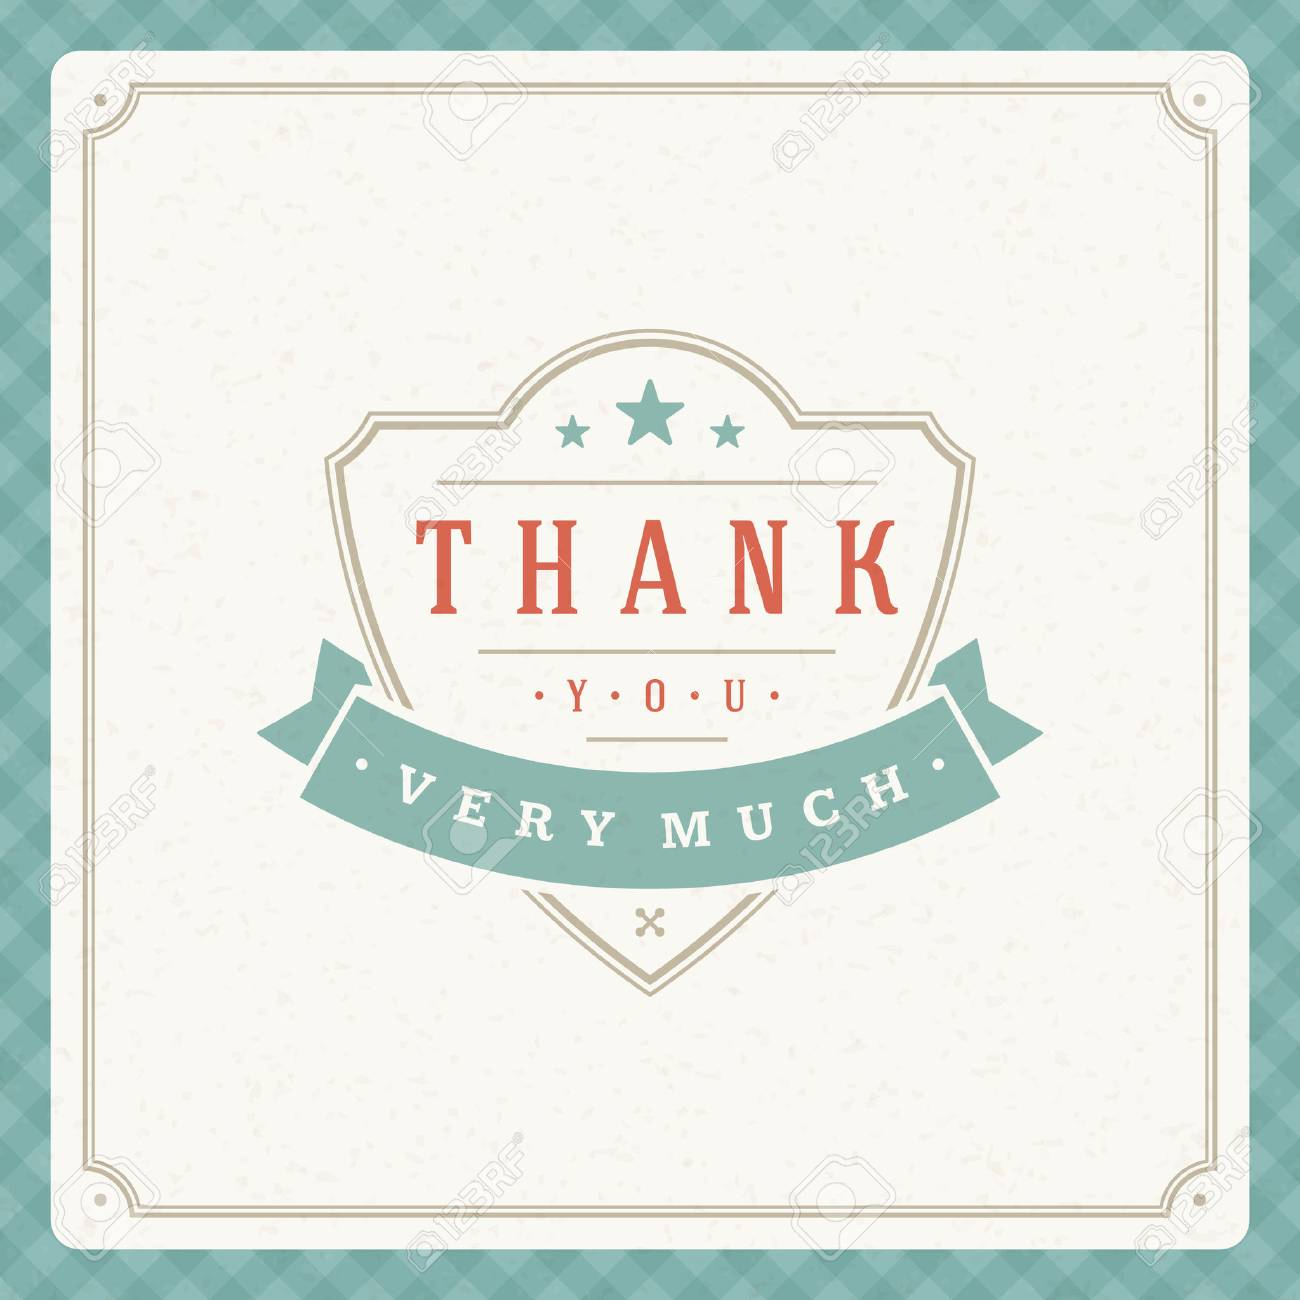 Thank you message text vintage greeting card design template thank you message text vintage greeting card design template retro vector background thank you m4hsunfo